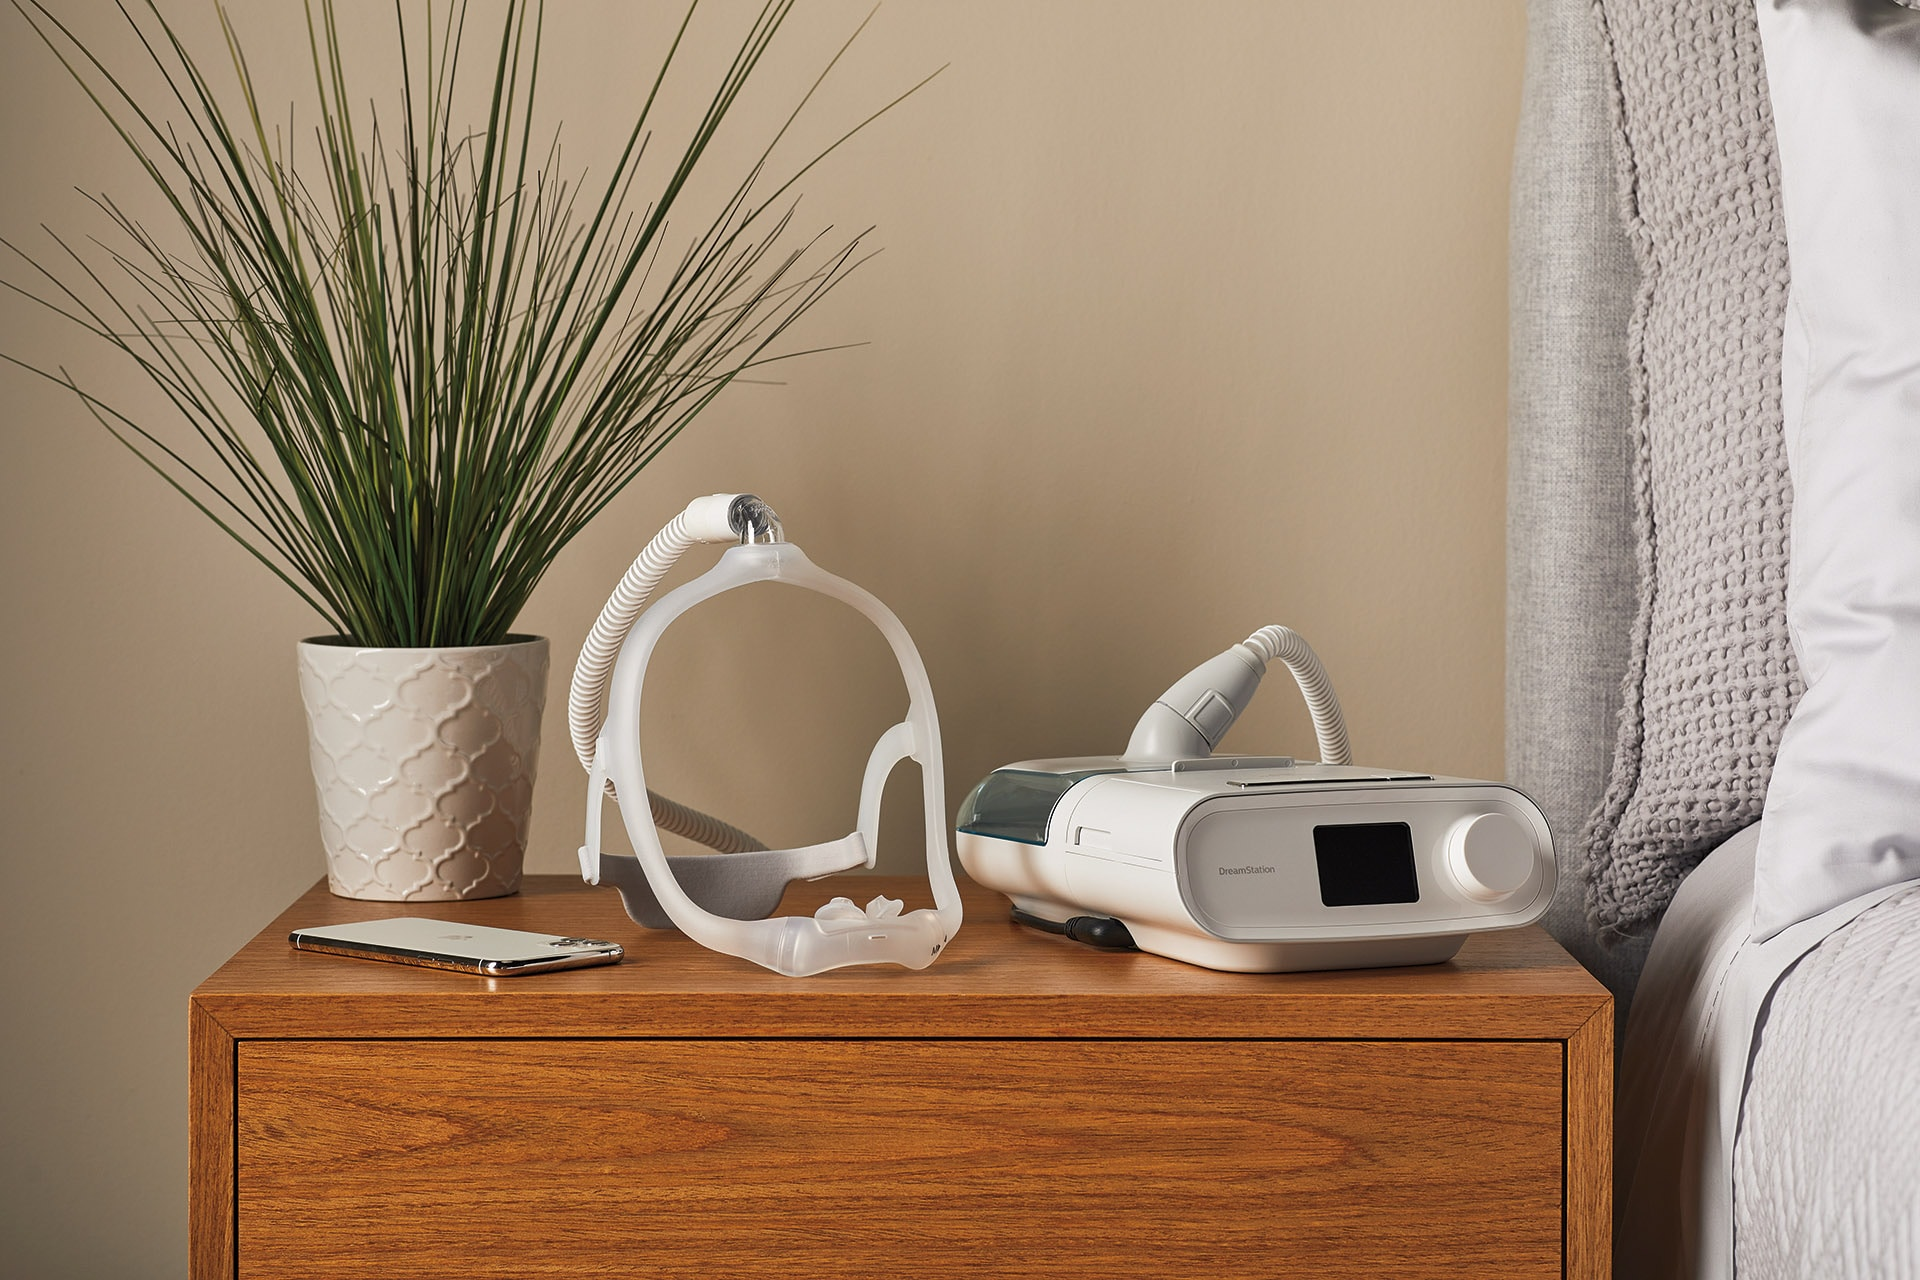 Download image (.jpg) Philips data-designed DreamWear Silicone Pillows CPAP mask